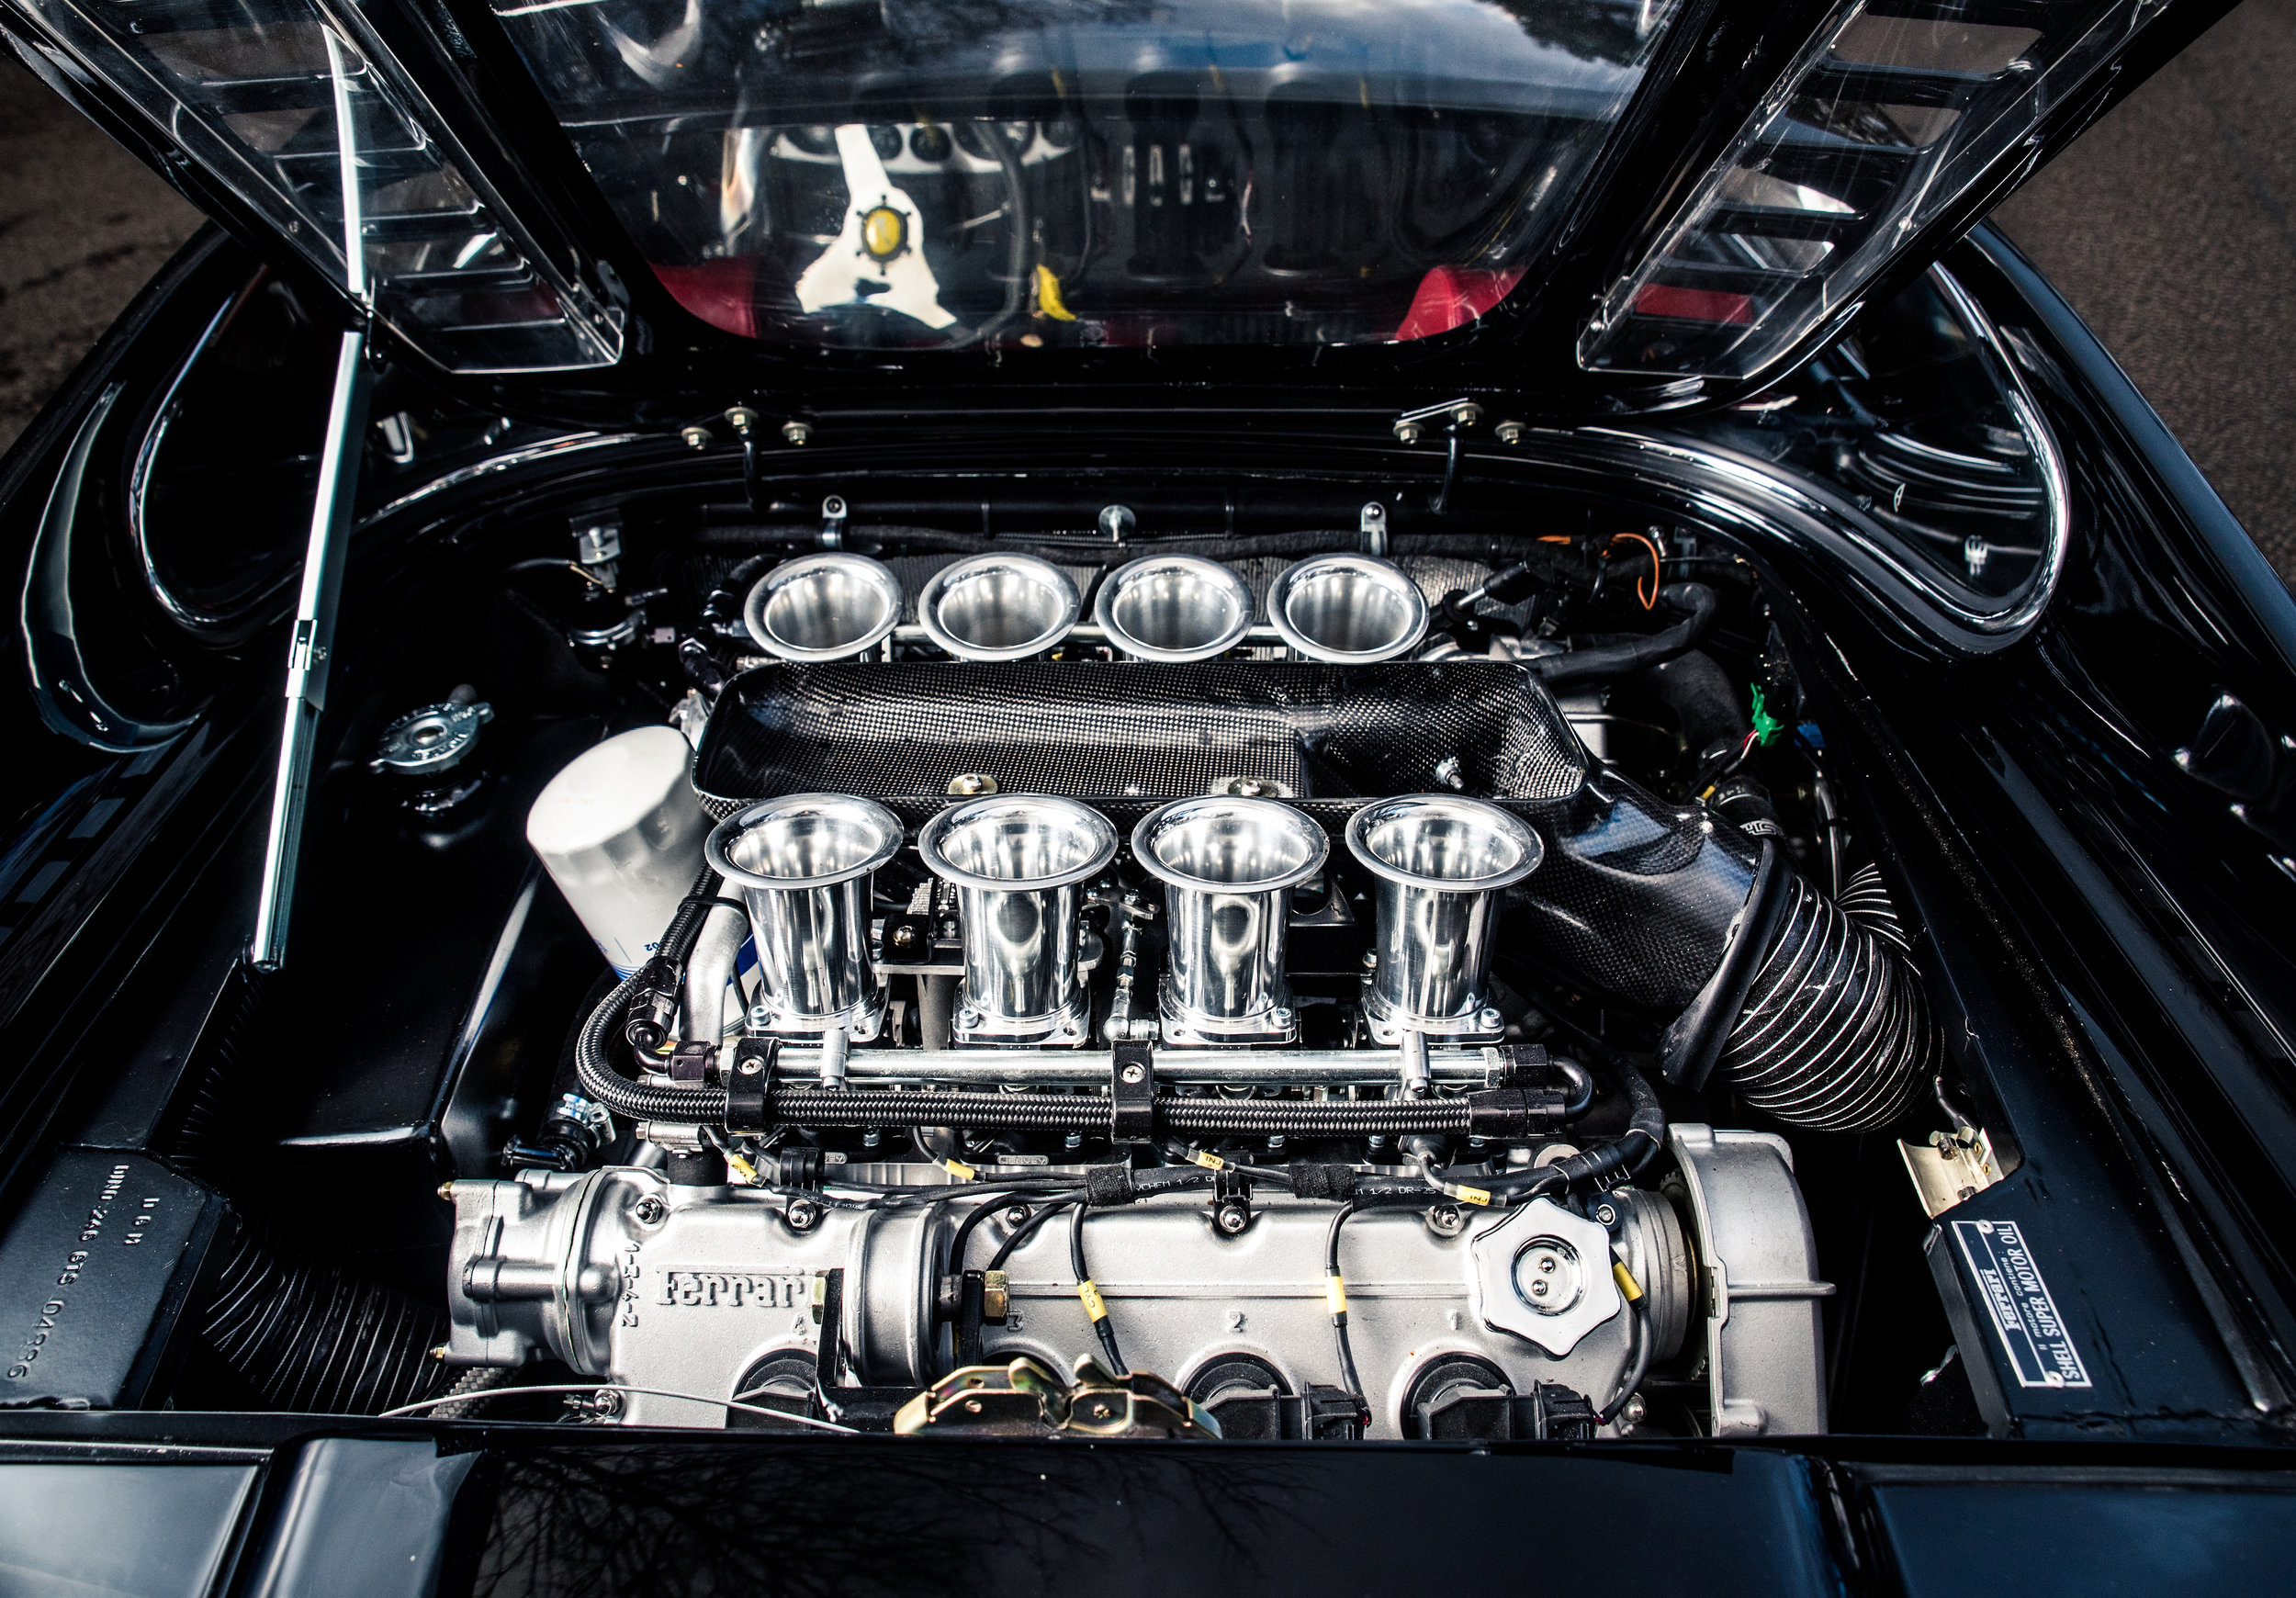 Ferrari V8 Engine 3.6 litres with MOTEC ECU producing 400BHP     Learn More